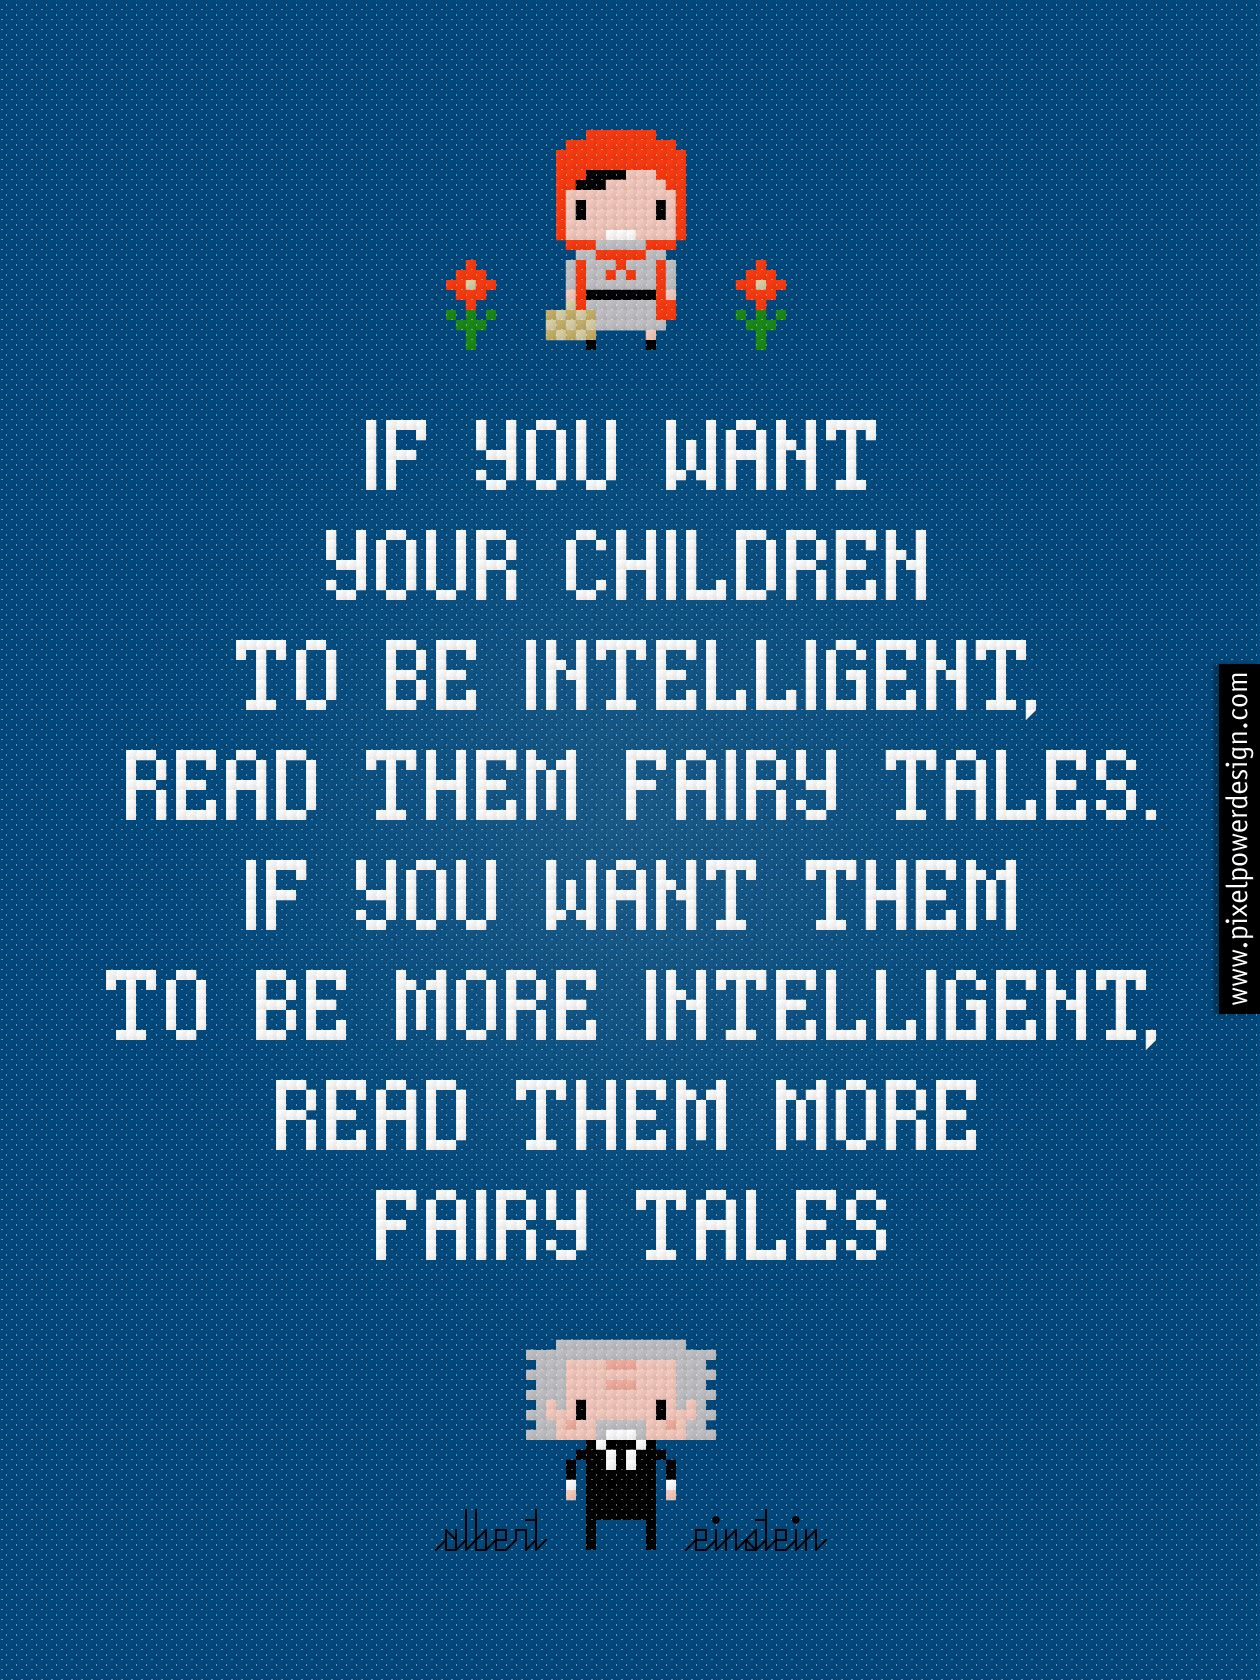 Fairy tales albert einstein quote pixelpower amazing cross